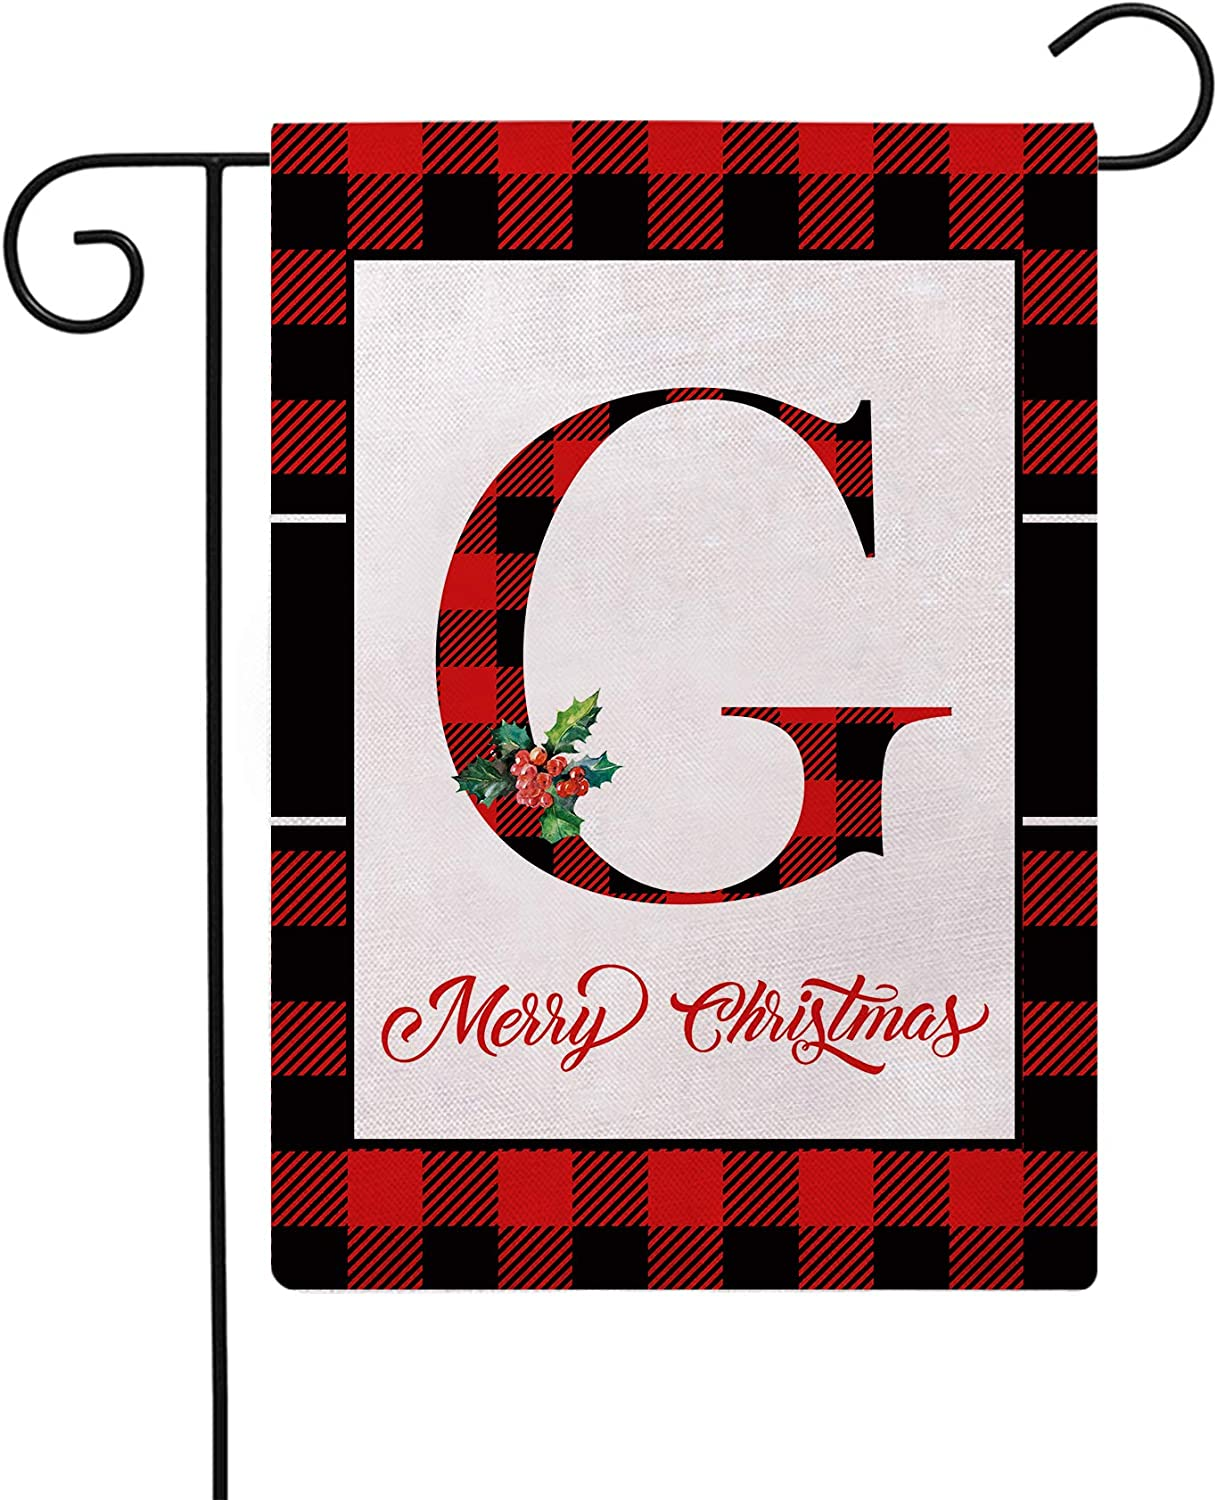 Christmas Plaid Decorative Garden Flags with Monogram Letter G Double Sided Farmhouse Red/Black Buffalo Plaid Winter Holiday Outdoor Garden Flags 12.5×18 Inch for House Garden Yard Patio Decor (G)